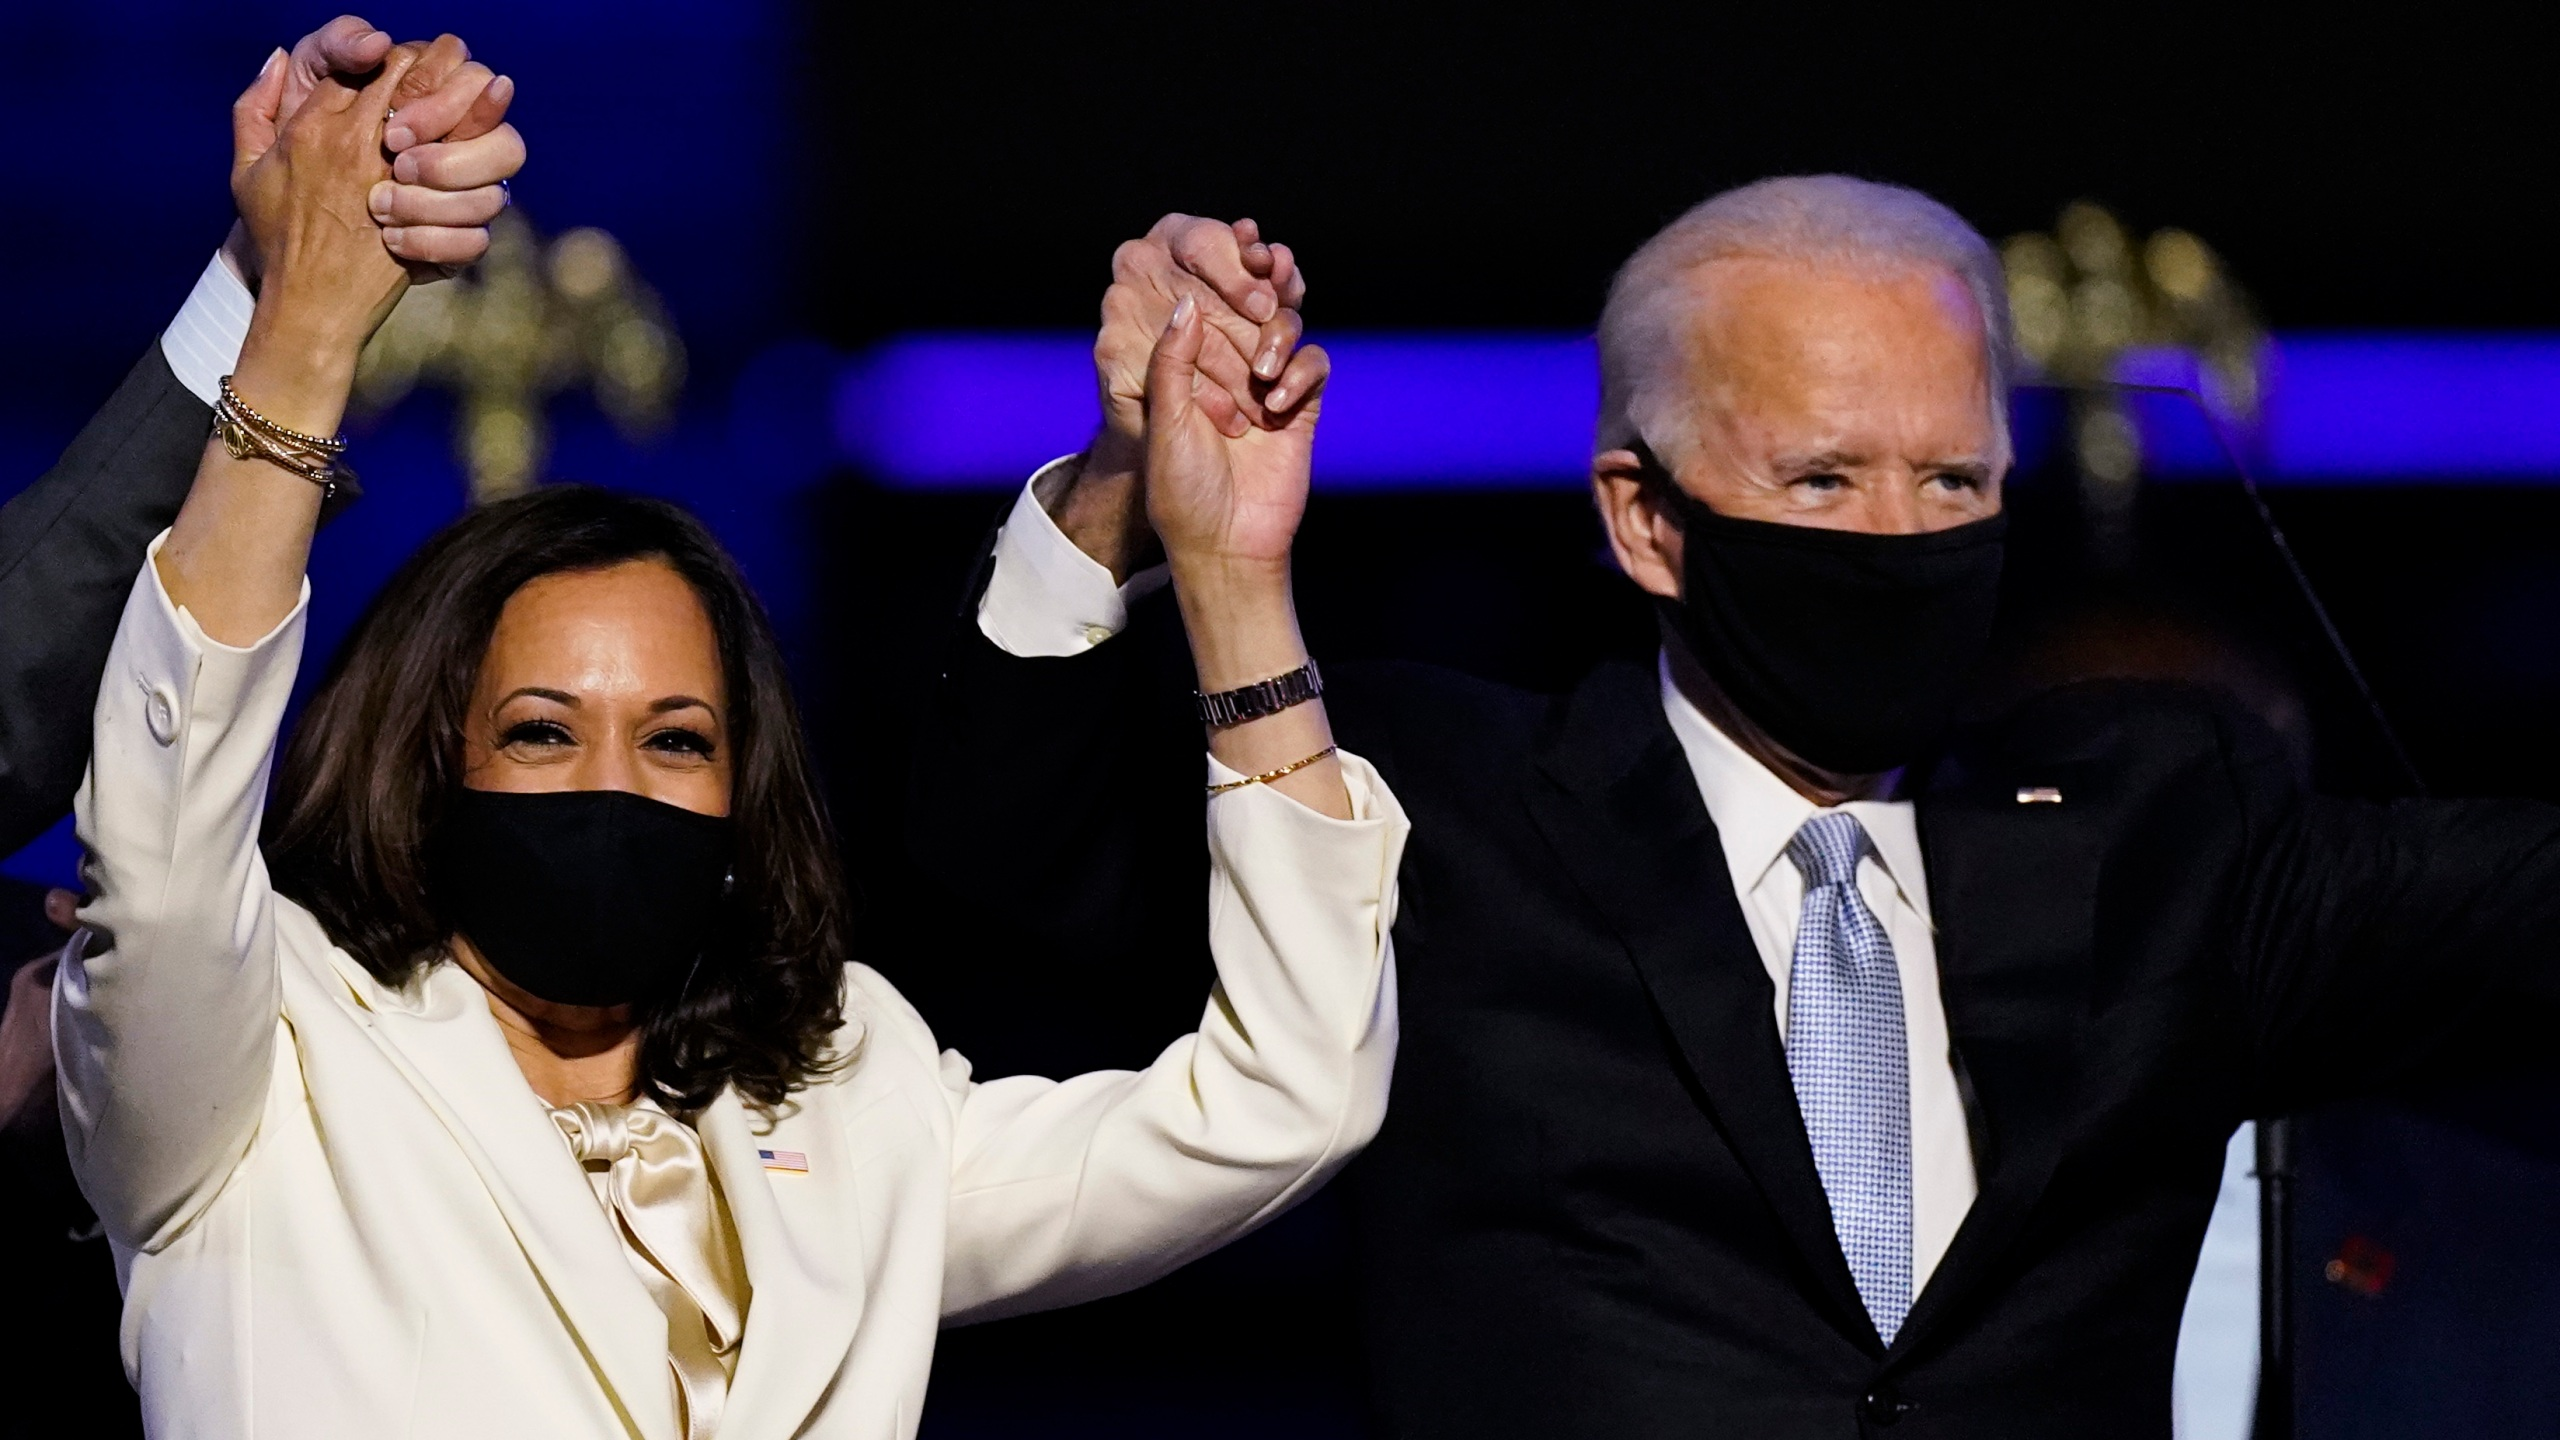 Vice President-elect Kamala Harris holds hands with President-elect Joe Biden and her husband Doug Emhoff as they celebrate Saturday, Nov. 7, 2020, in Wilmington, Del. (AP Photo/Andrew Harnik)